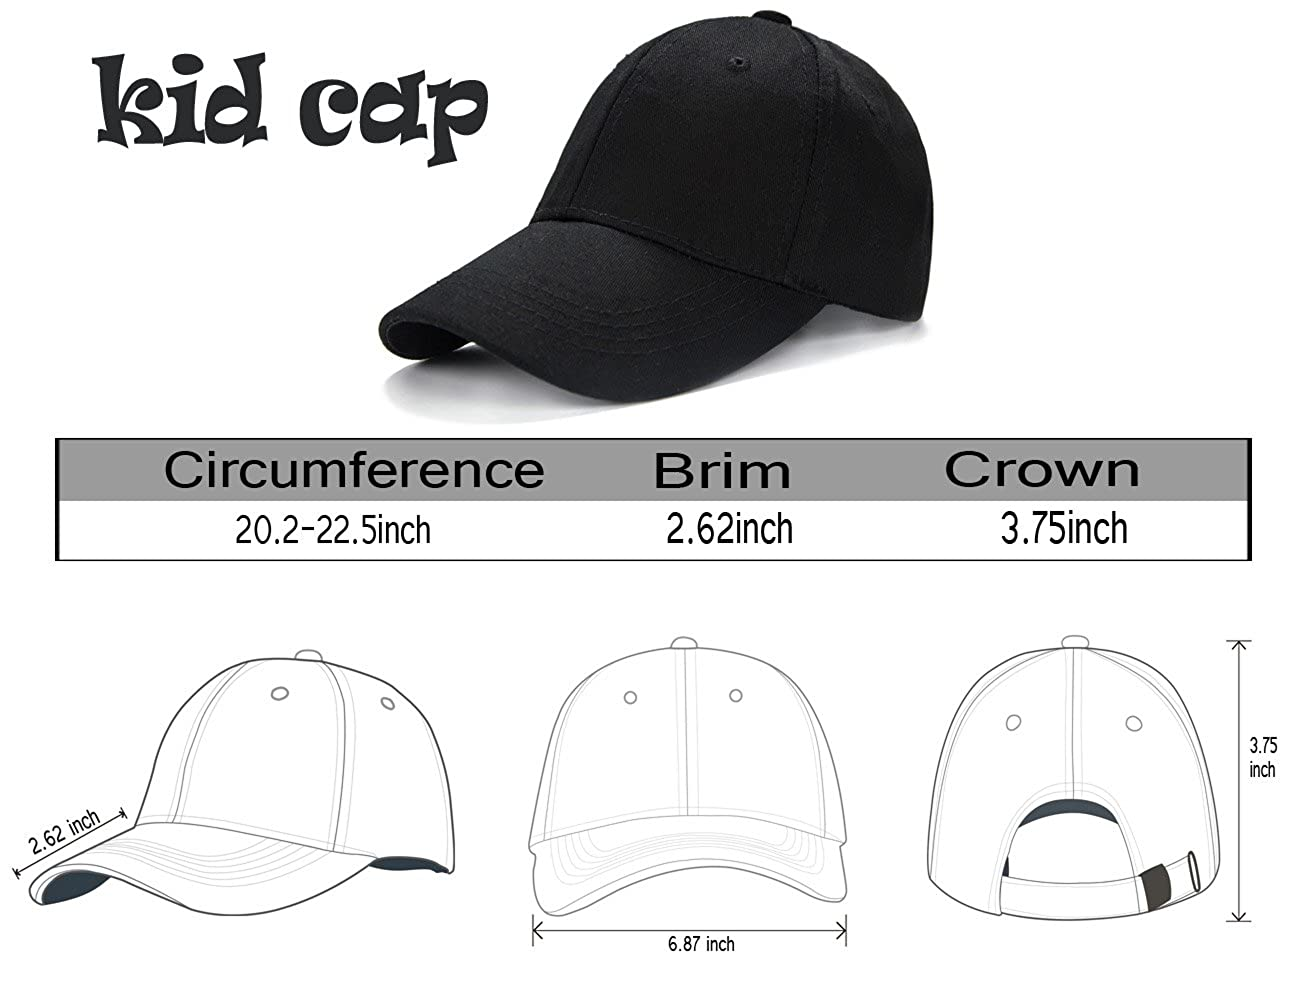 81b393d66e8 Amazon.com  Edoneery Unisex Kids Plain Cotton Adjustable Low Profile  Baseball Cap Hat (Black)  Clothing